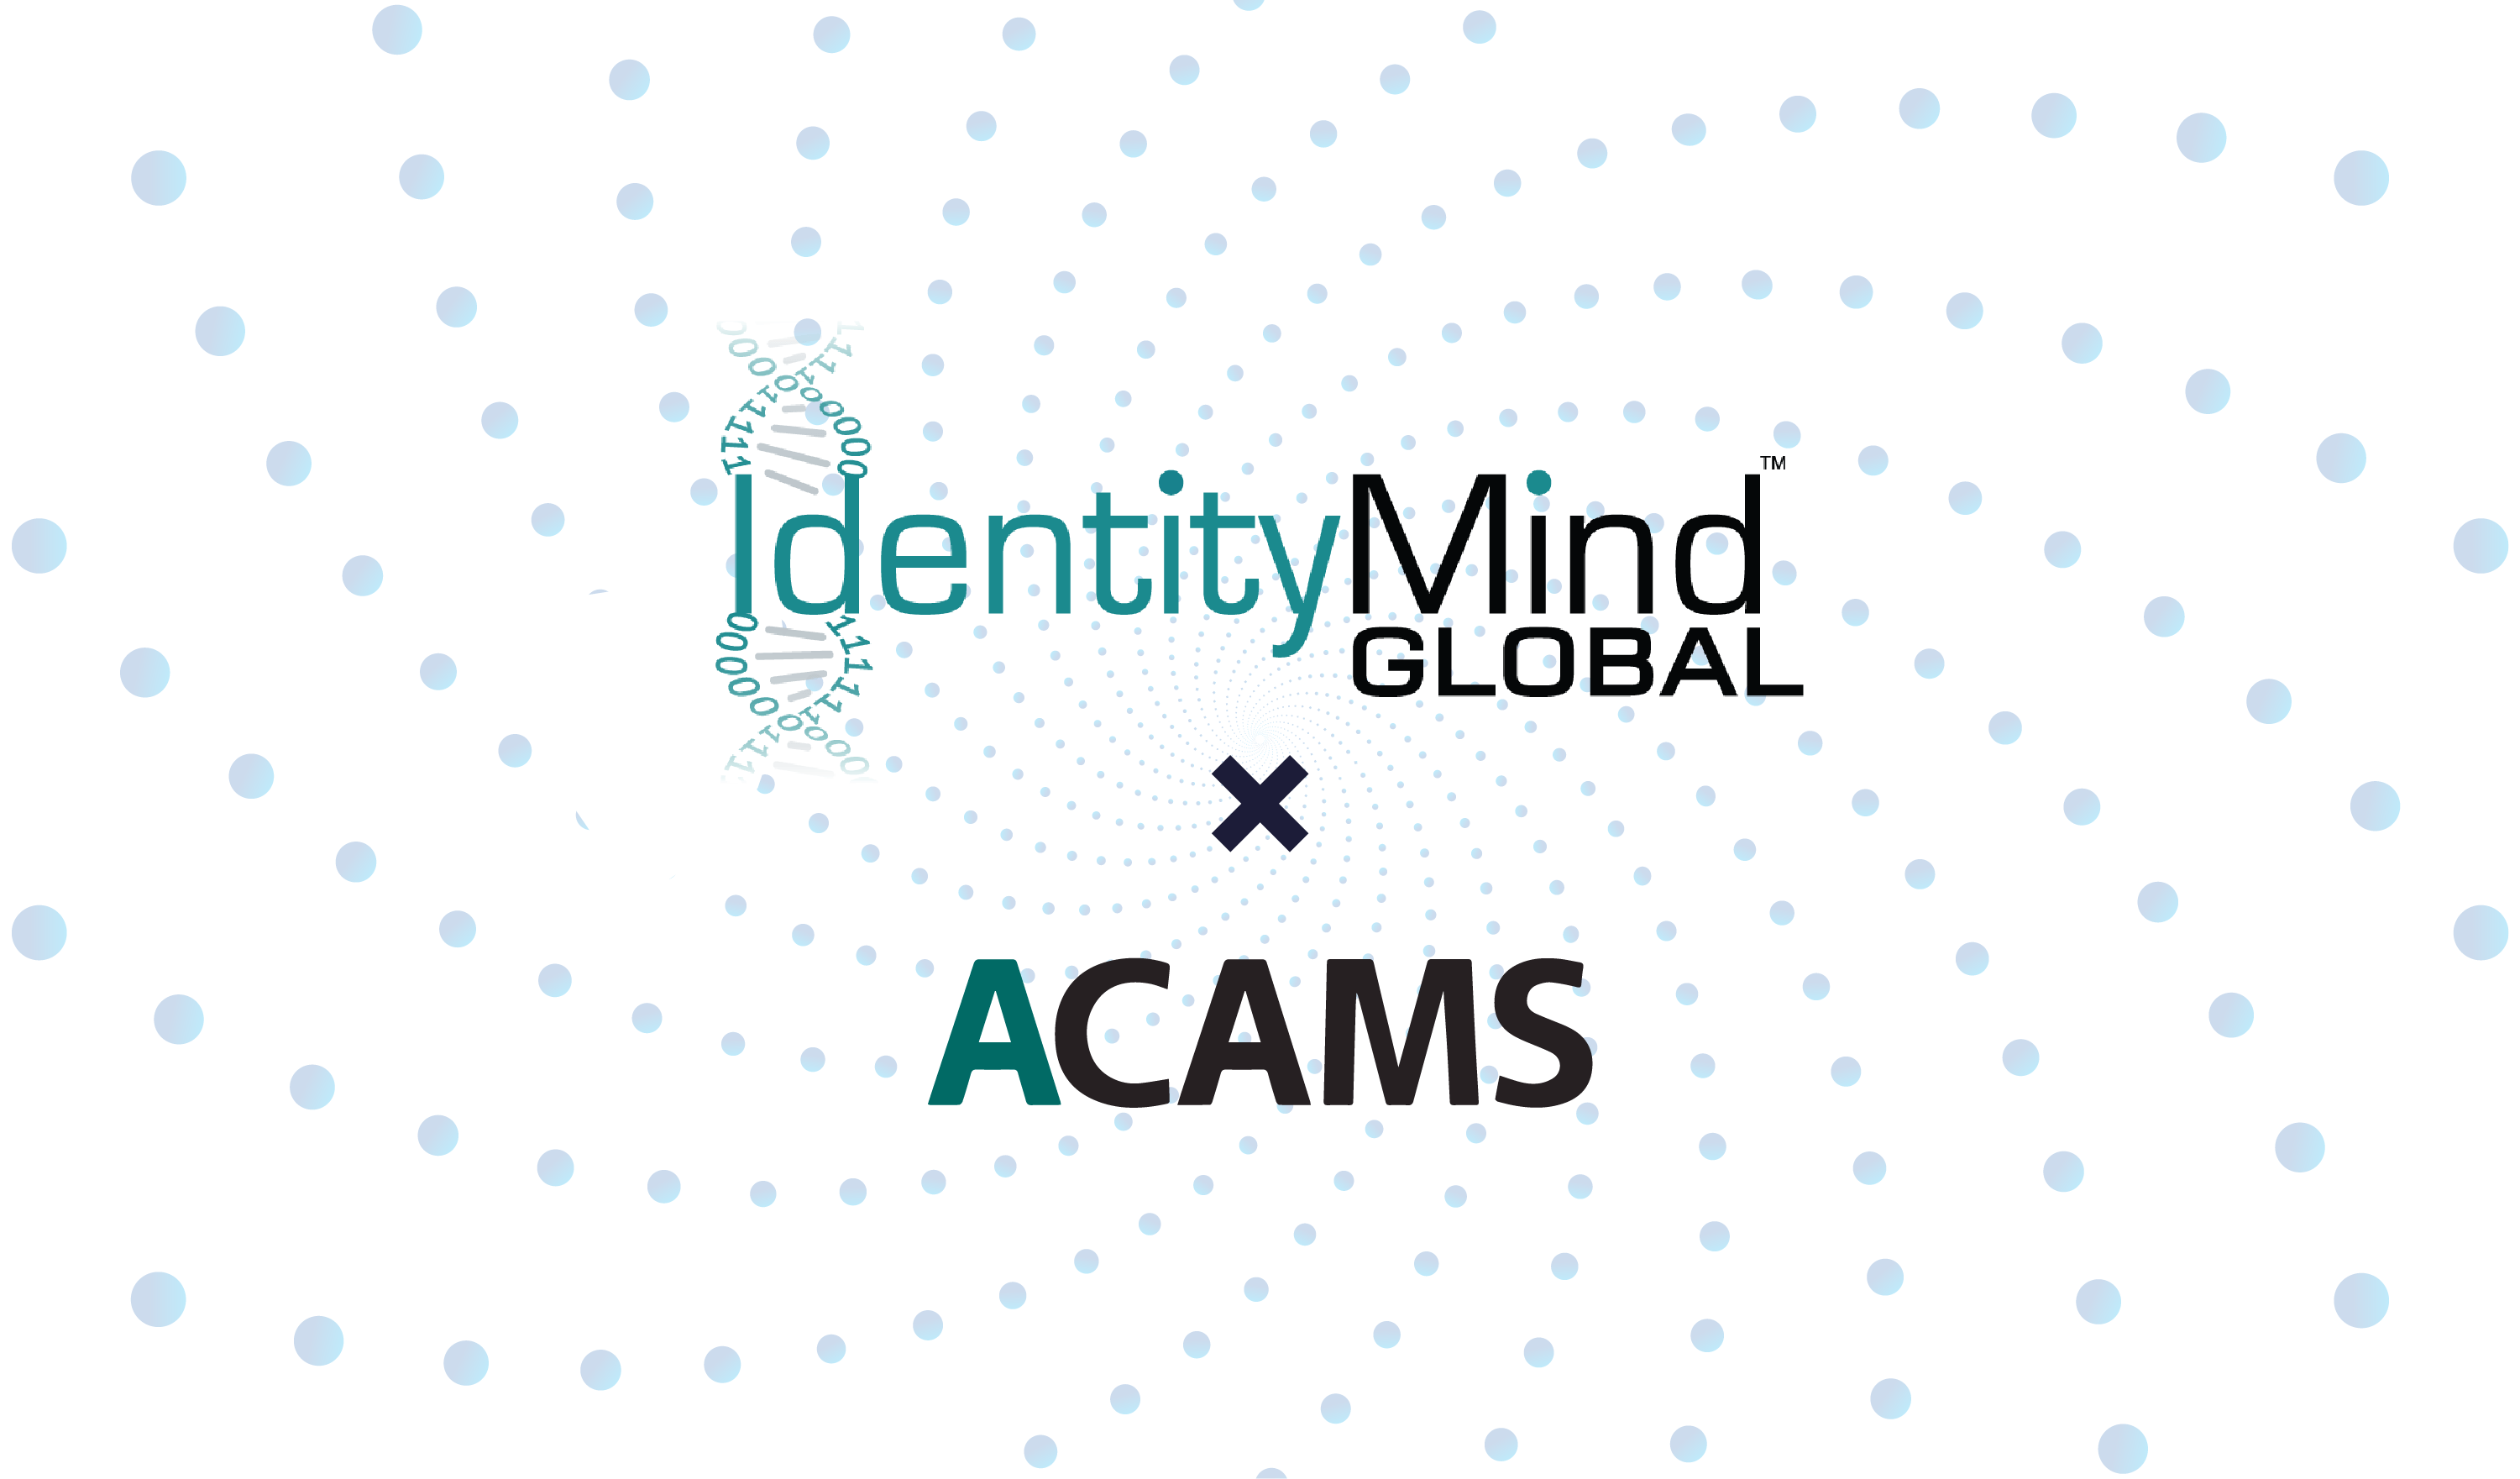 IdentityMind Global to Showcase Market-leading Digital Identity-based Compliance, Risk Management, and Fraud Prevention Solutions at ACAMS